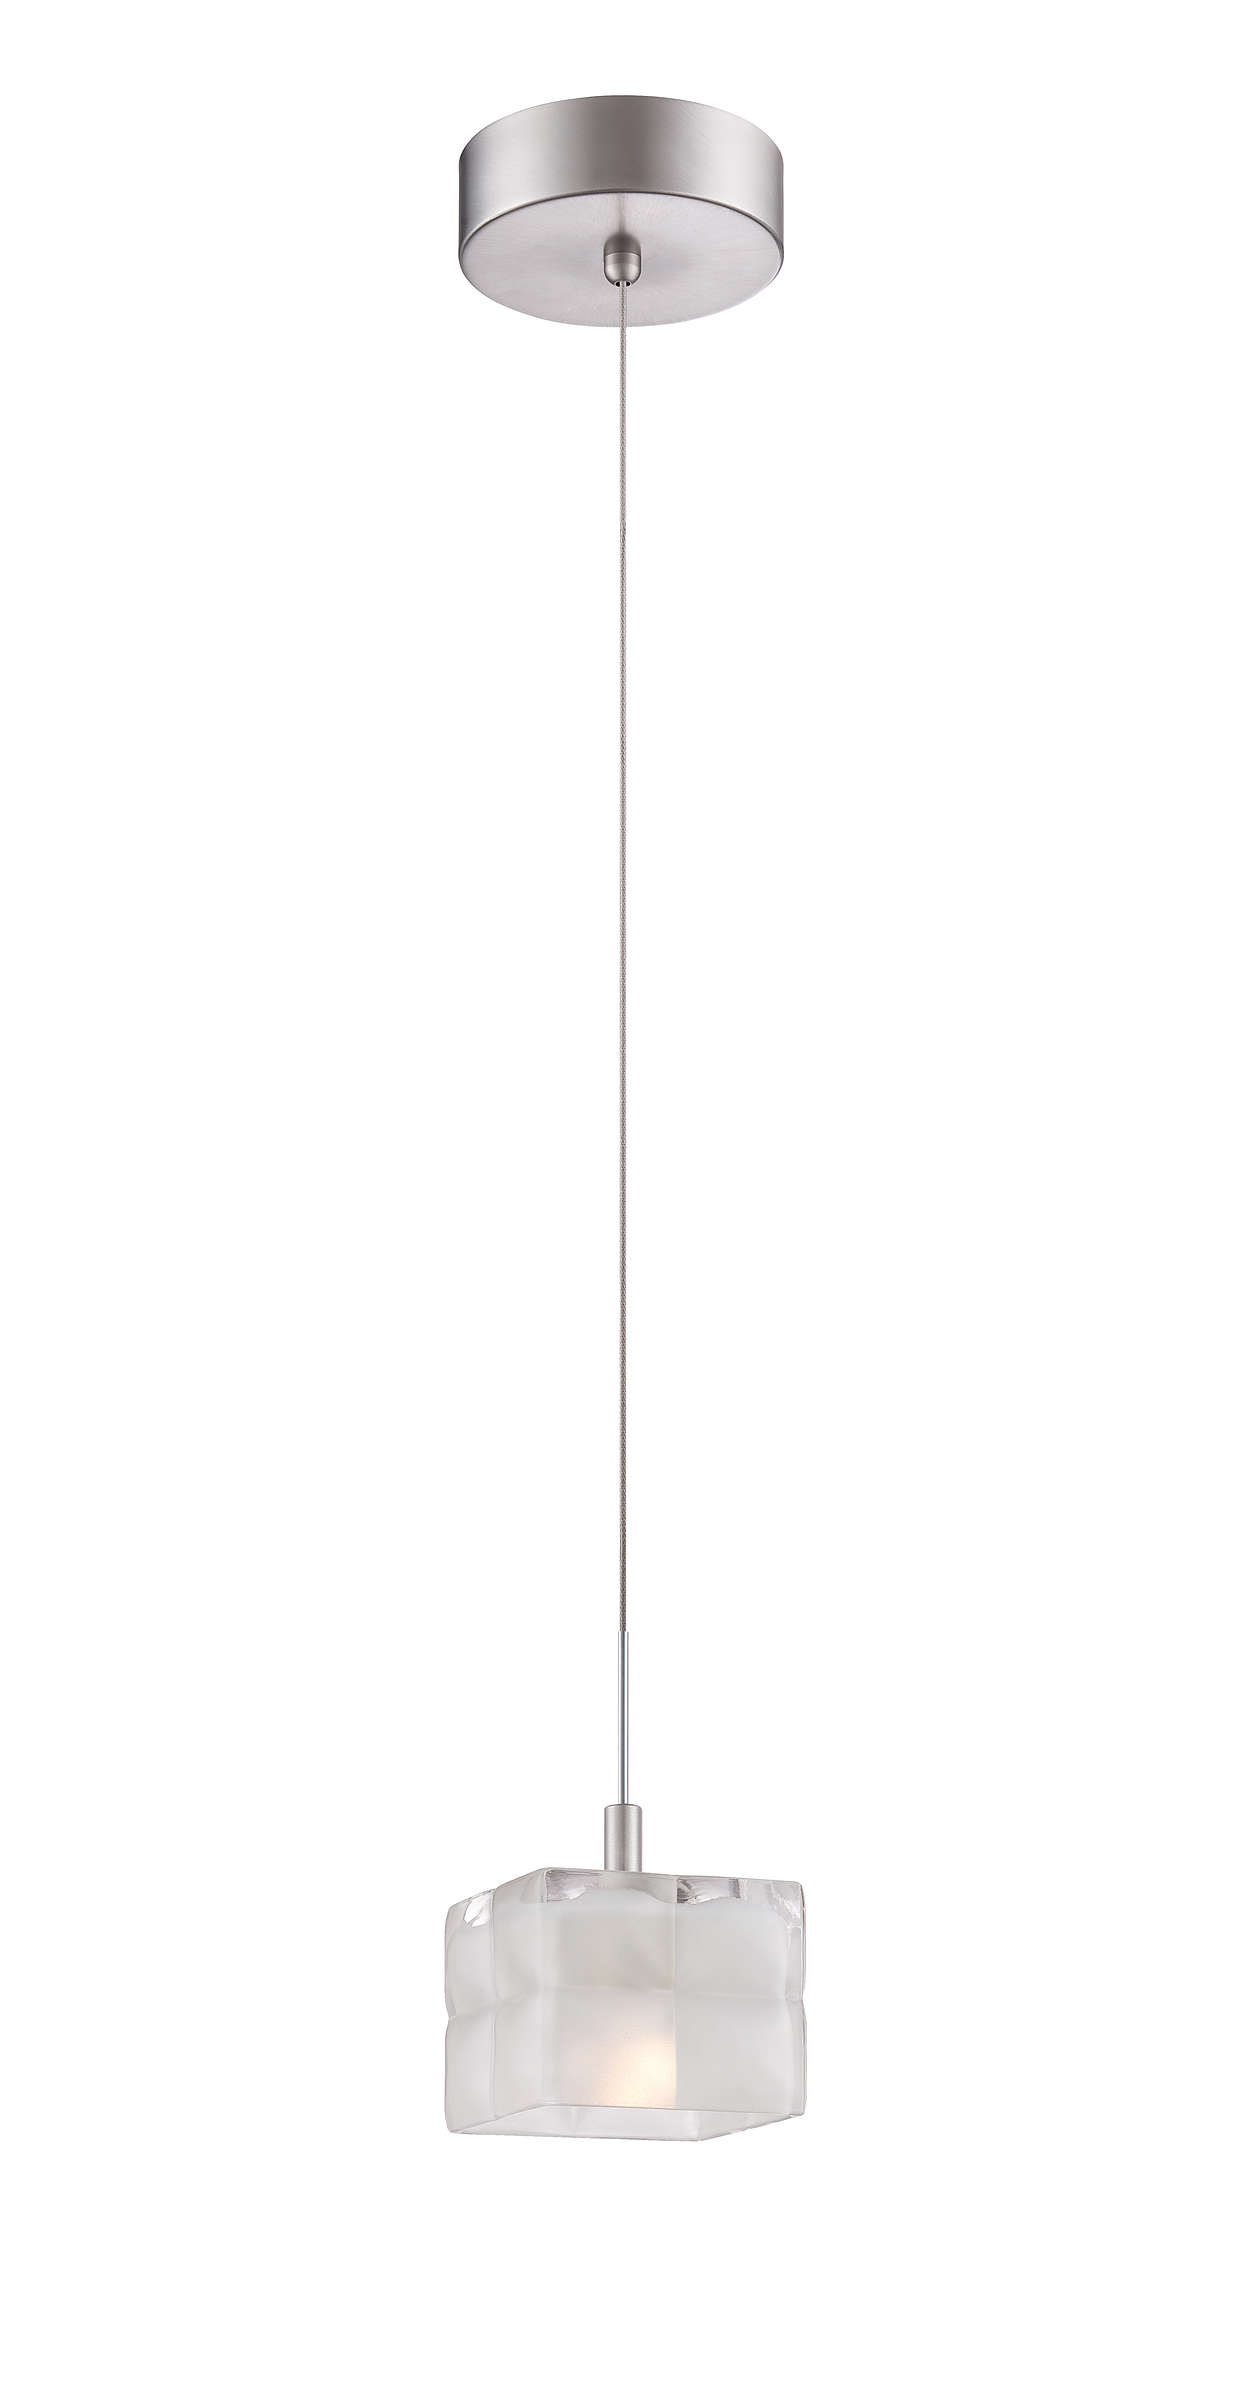 Cushion 1-light LED pendant in Satin Nickel finish